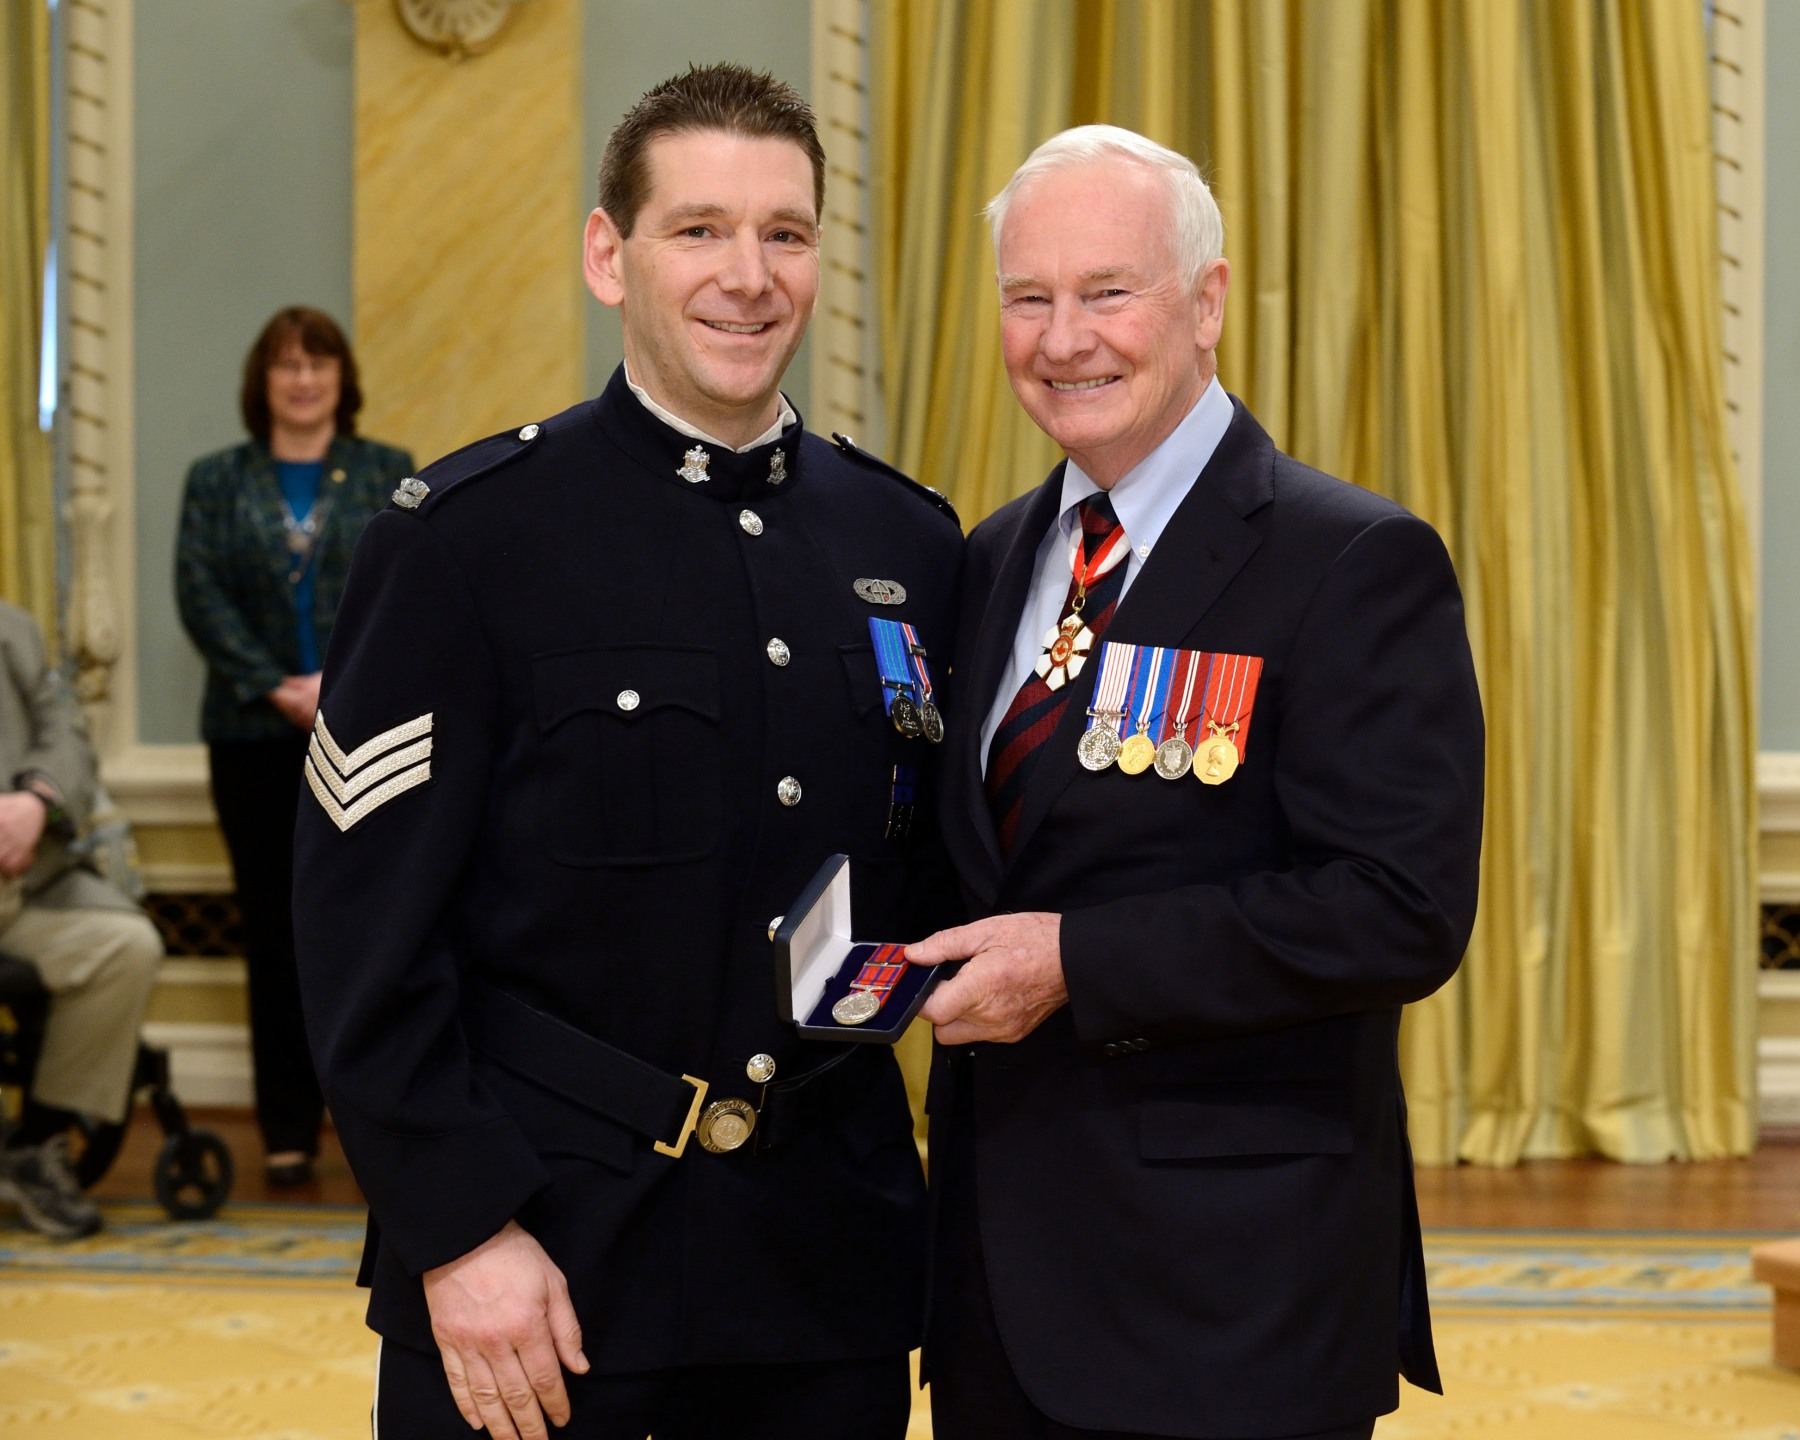 On June 15, 2011, Victoria Police sergeants Michael Brown and Michael Johnston (pictured), along with constables Steve Kowan and Ken Ramsay, risked their lives to search a drug dealer's house rigged with deadly booby traps, in Victoria, British Columbia. The officers were in danger of being electrocuted or injured by explosions from flammable liquids that were wired to homemade triggers placed randomly throughout the residence. Thankfully, no one was inside and the search was conducted without setting off any of the traps. (This is the second Decoration for Bravery awarded to Sergeant Johnston.)